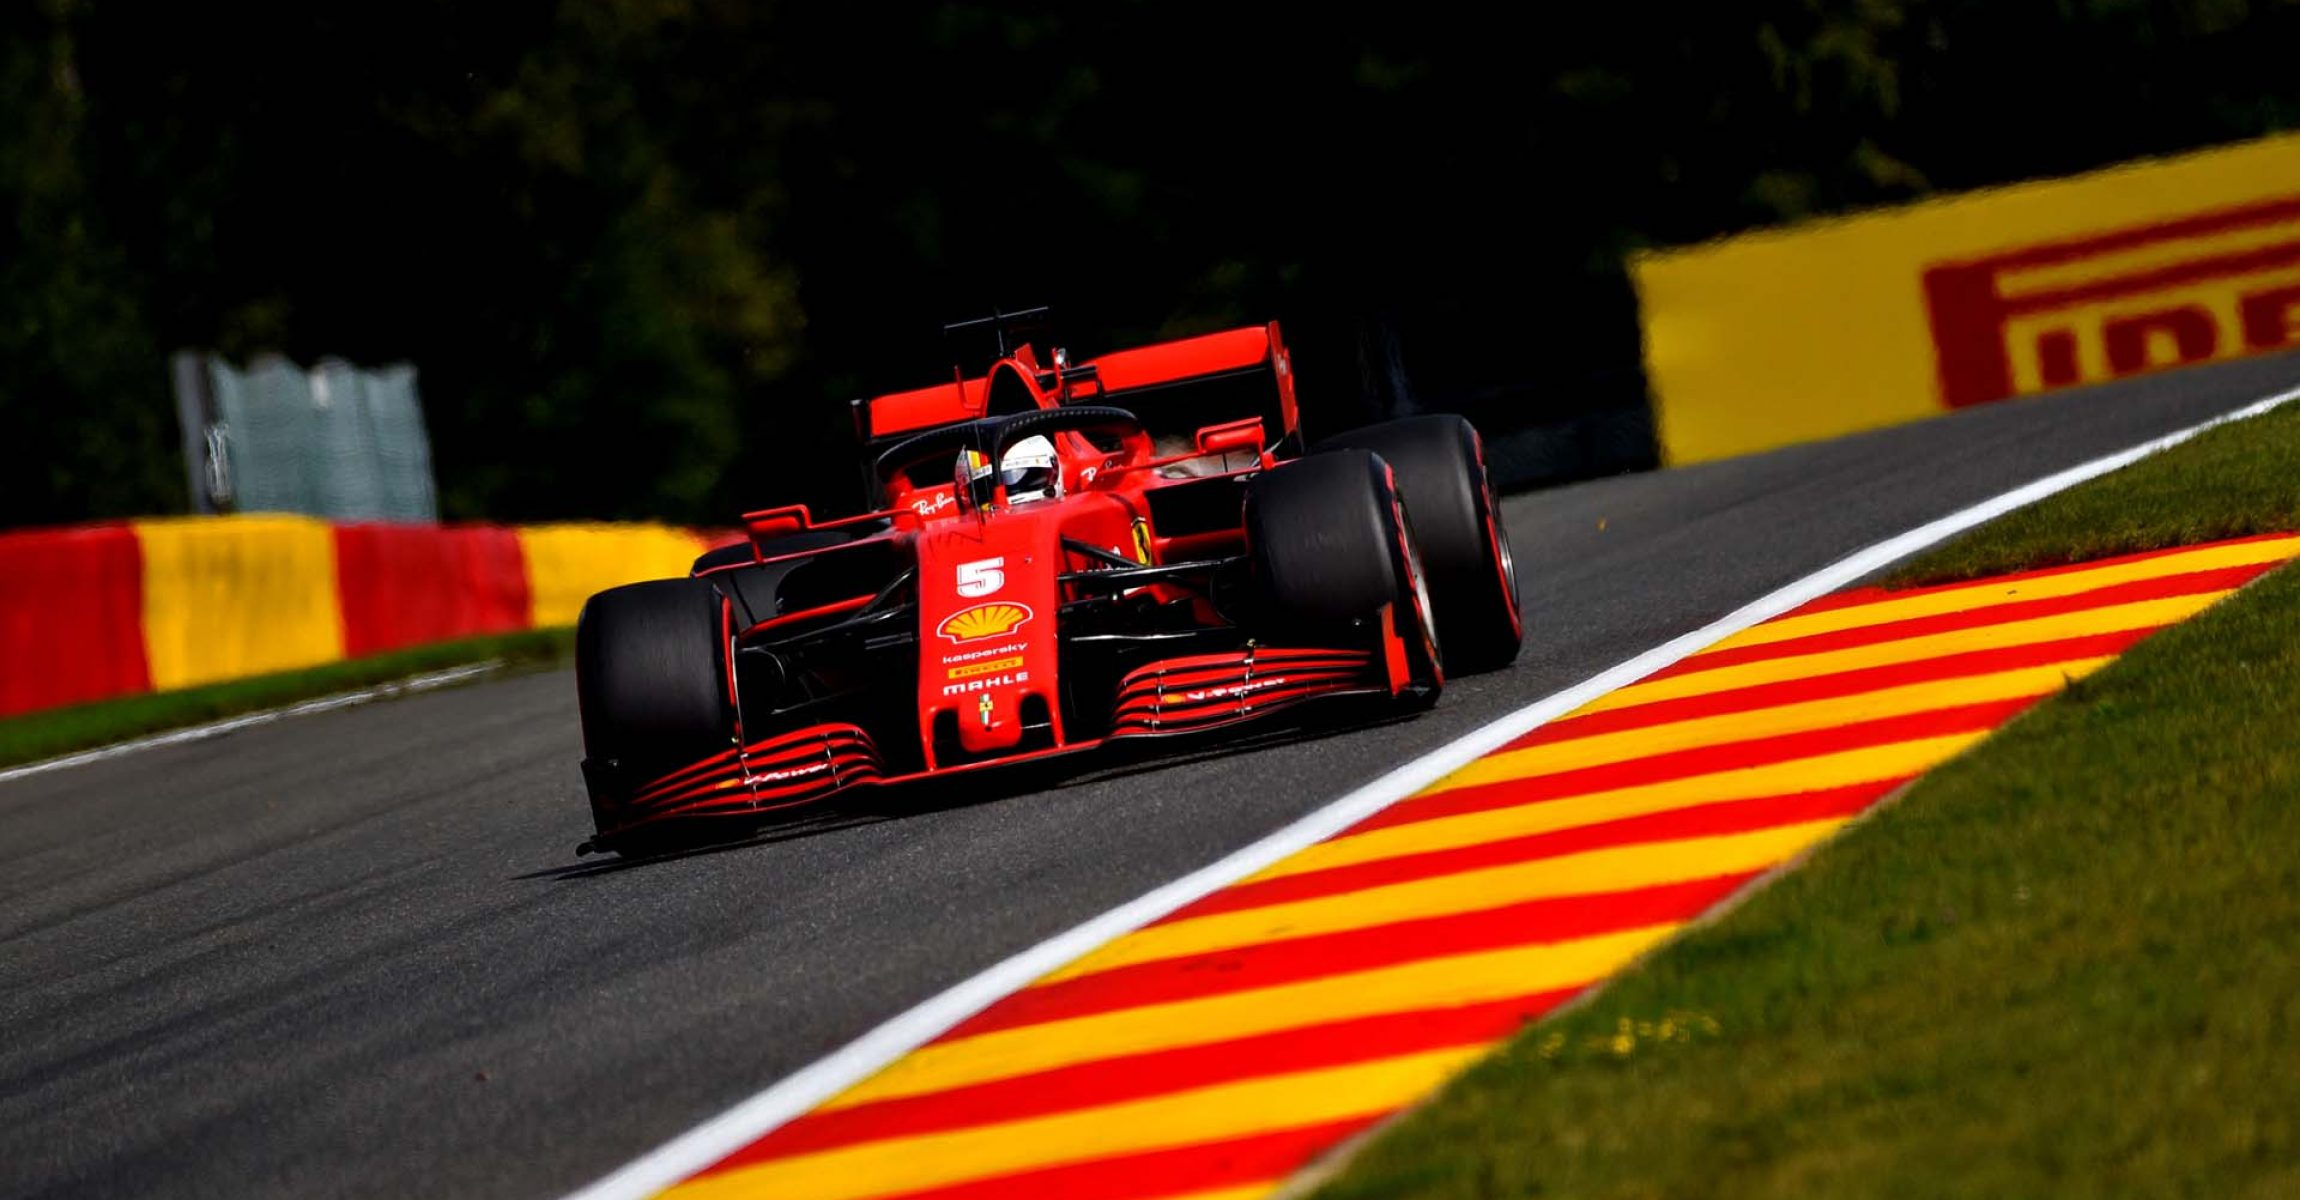 GP BELGIO F1/2020 -  DOMENICA 30/08/2020    credit: @Scuderia Ferrari Press Office Sebastian Vettel